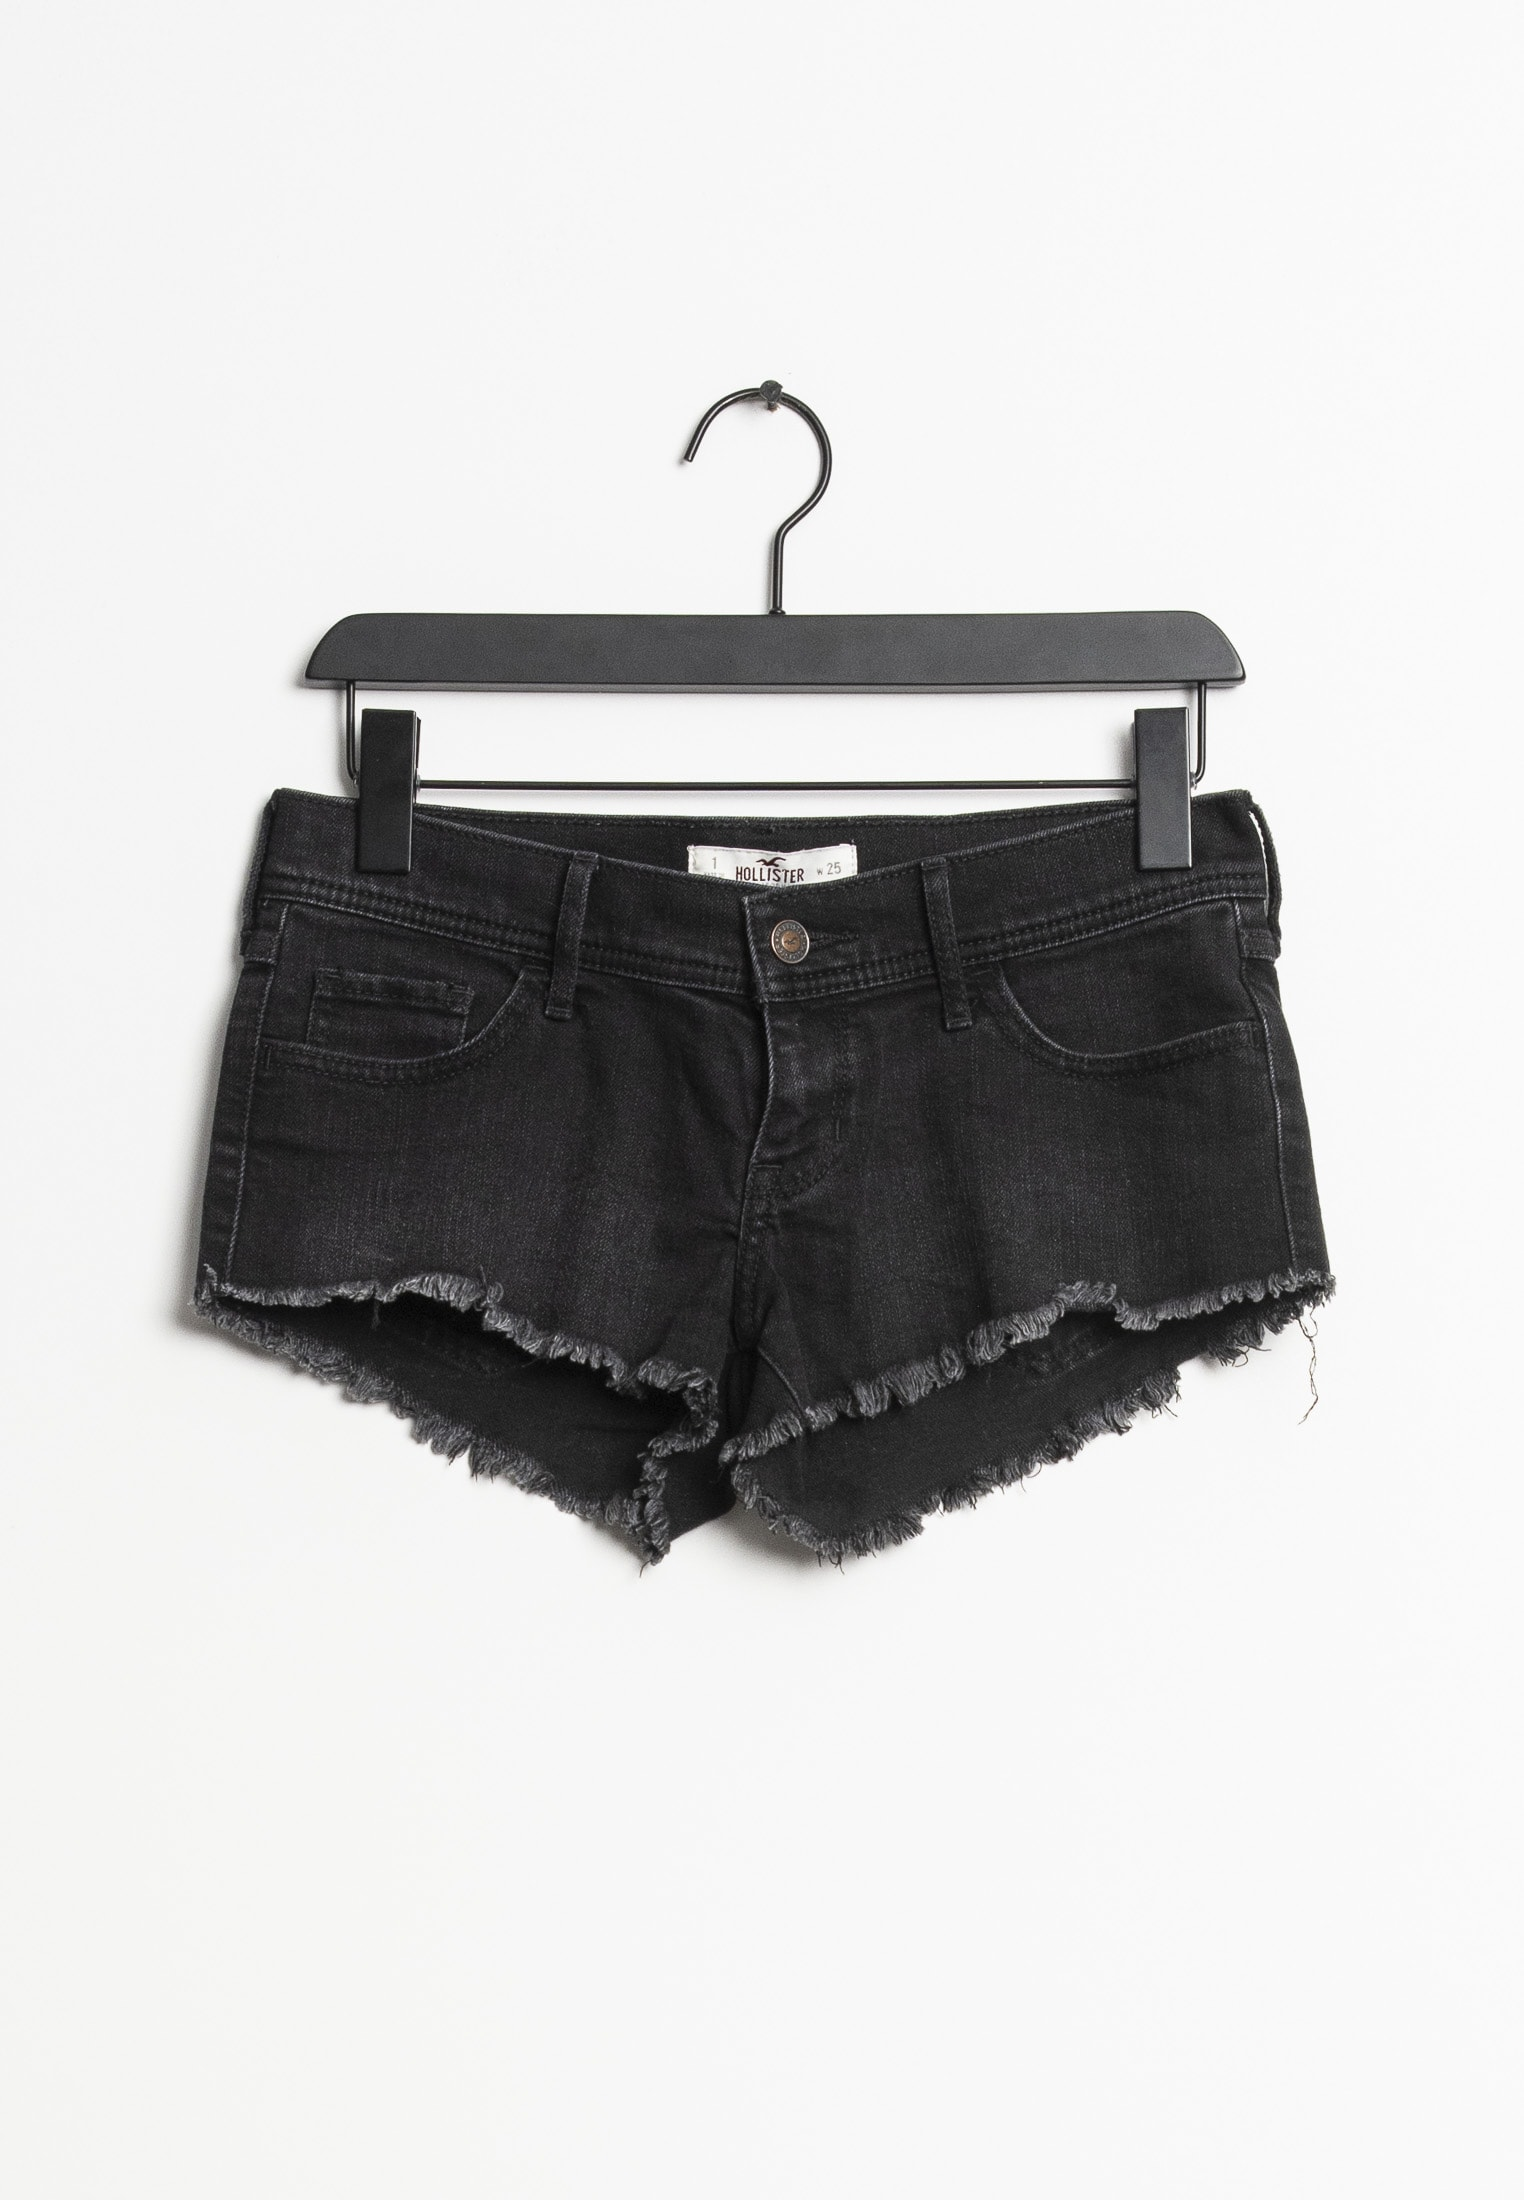 Hollister Co. shorts, sort, 25